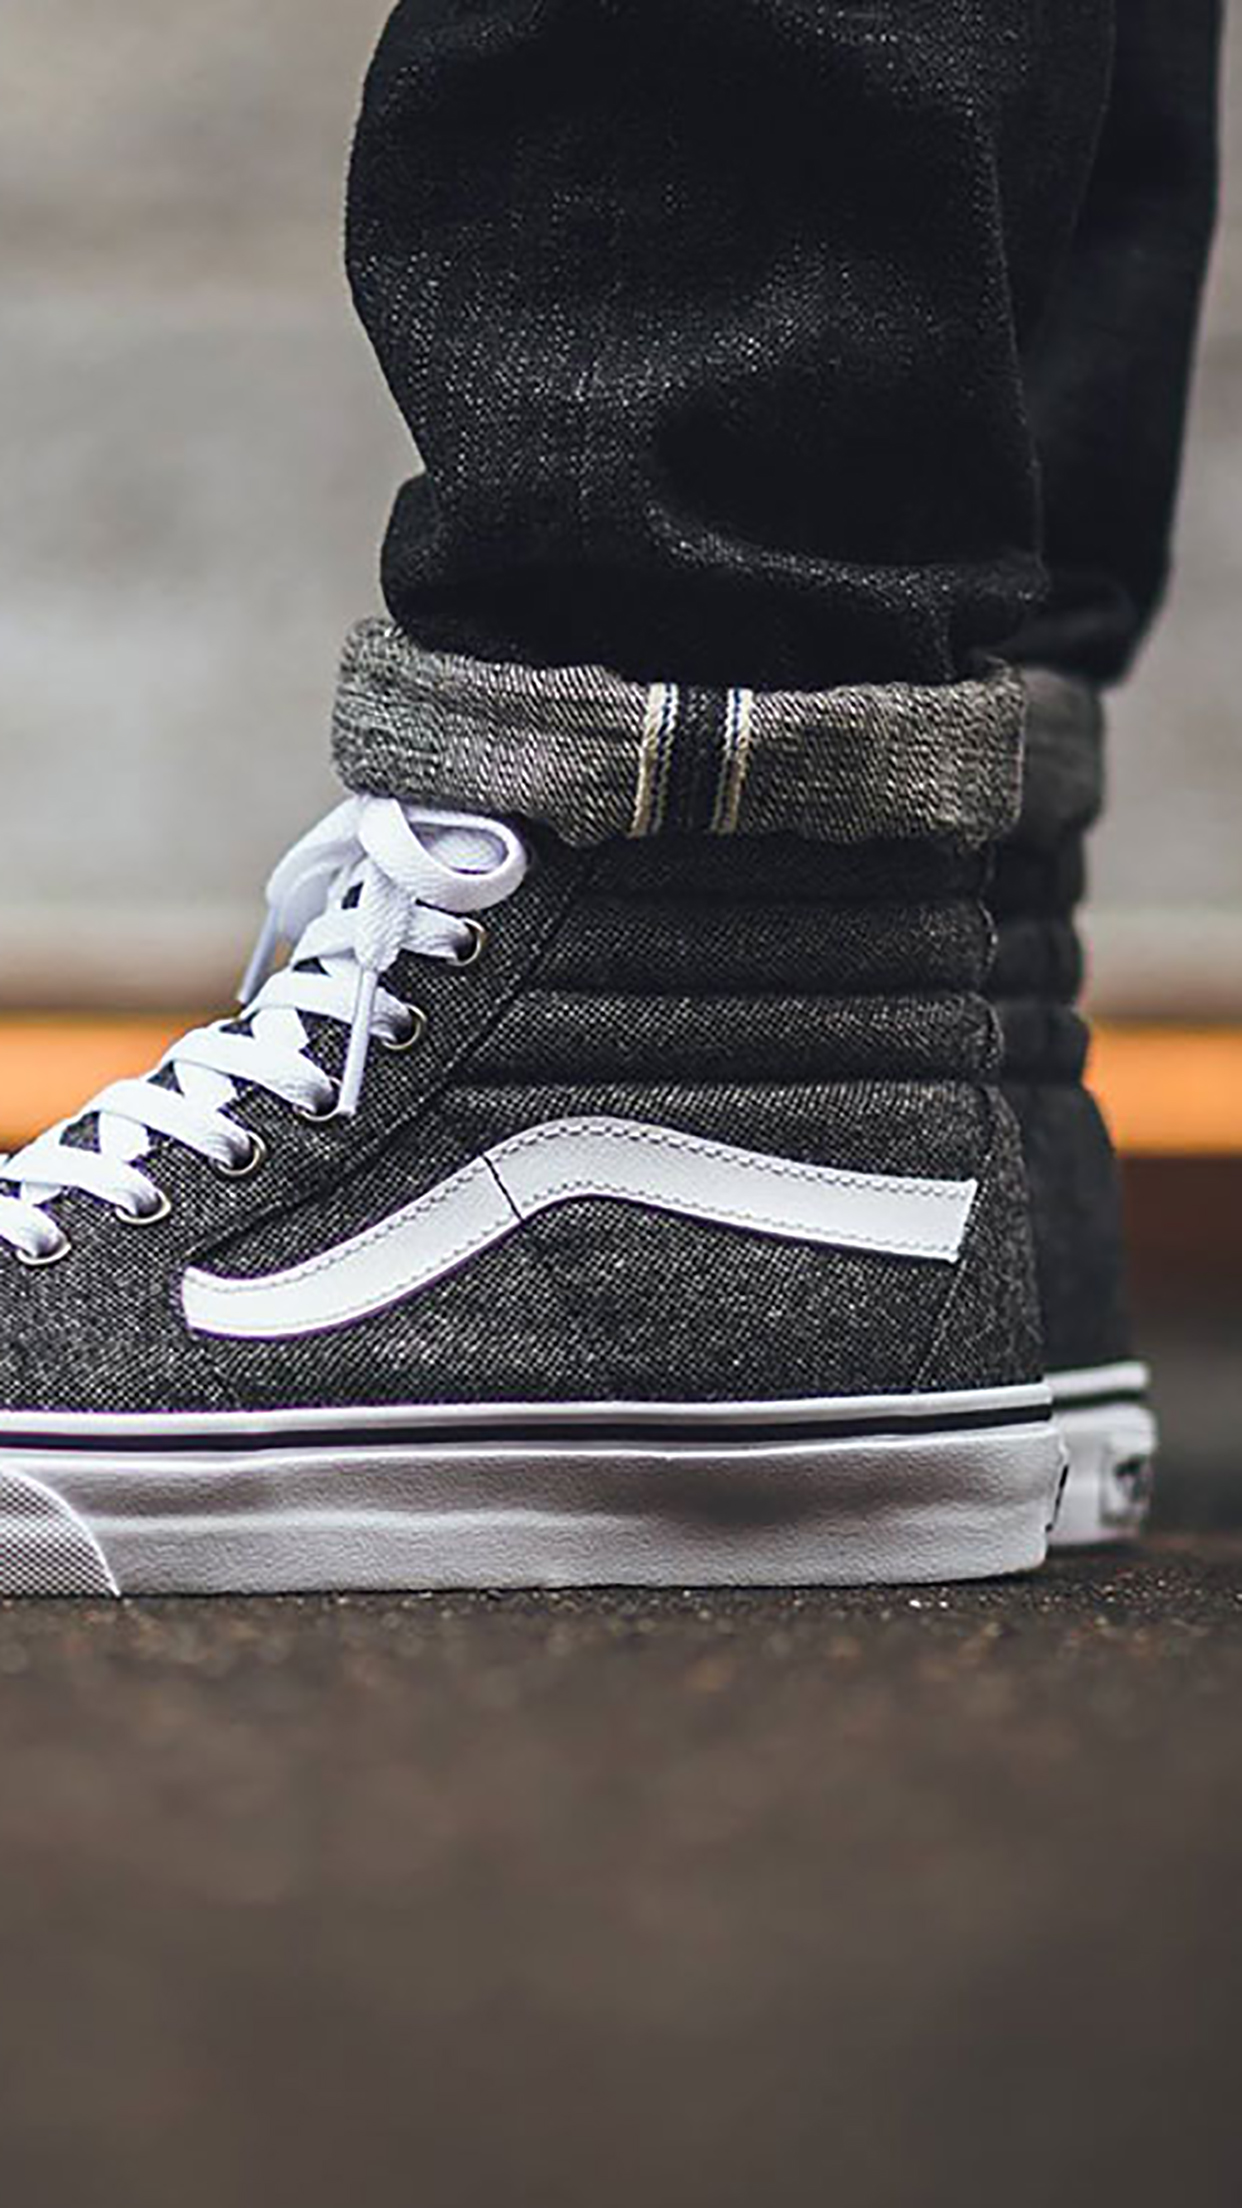 Vans Shoe Wallpaper For Iphone X 8 7 6 Free Download On 3wallpapers